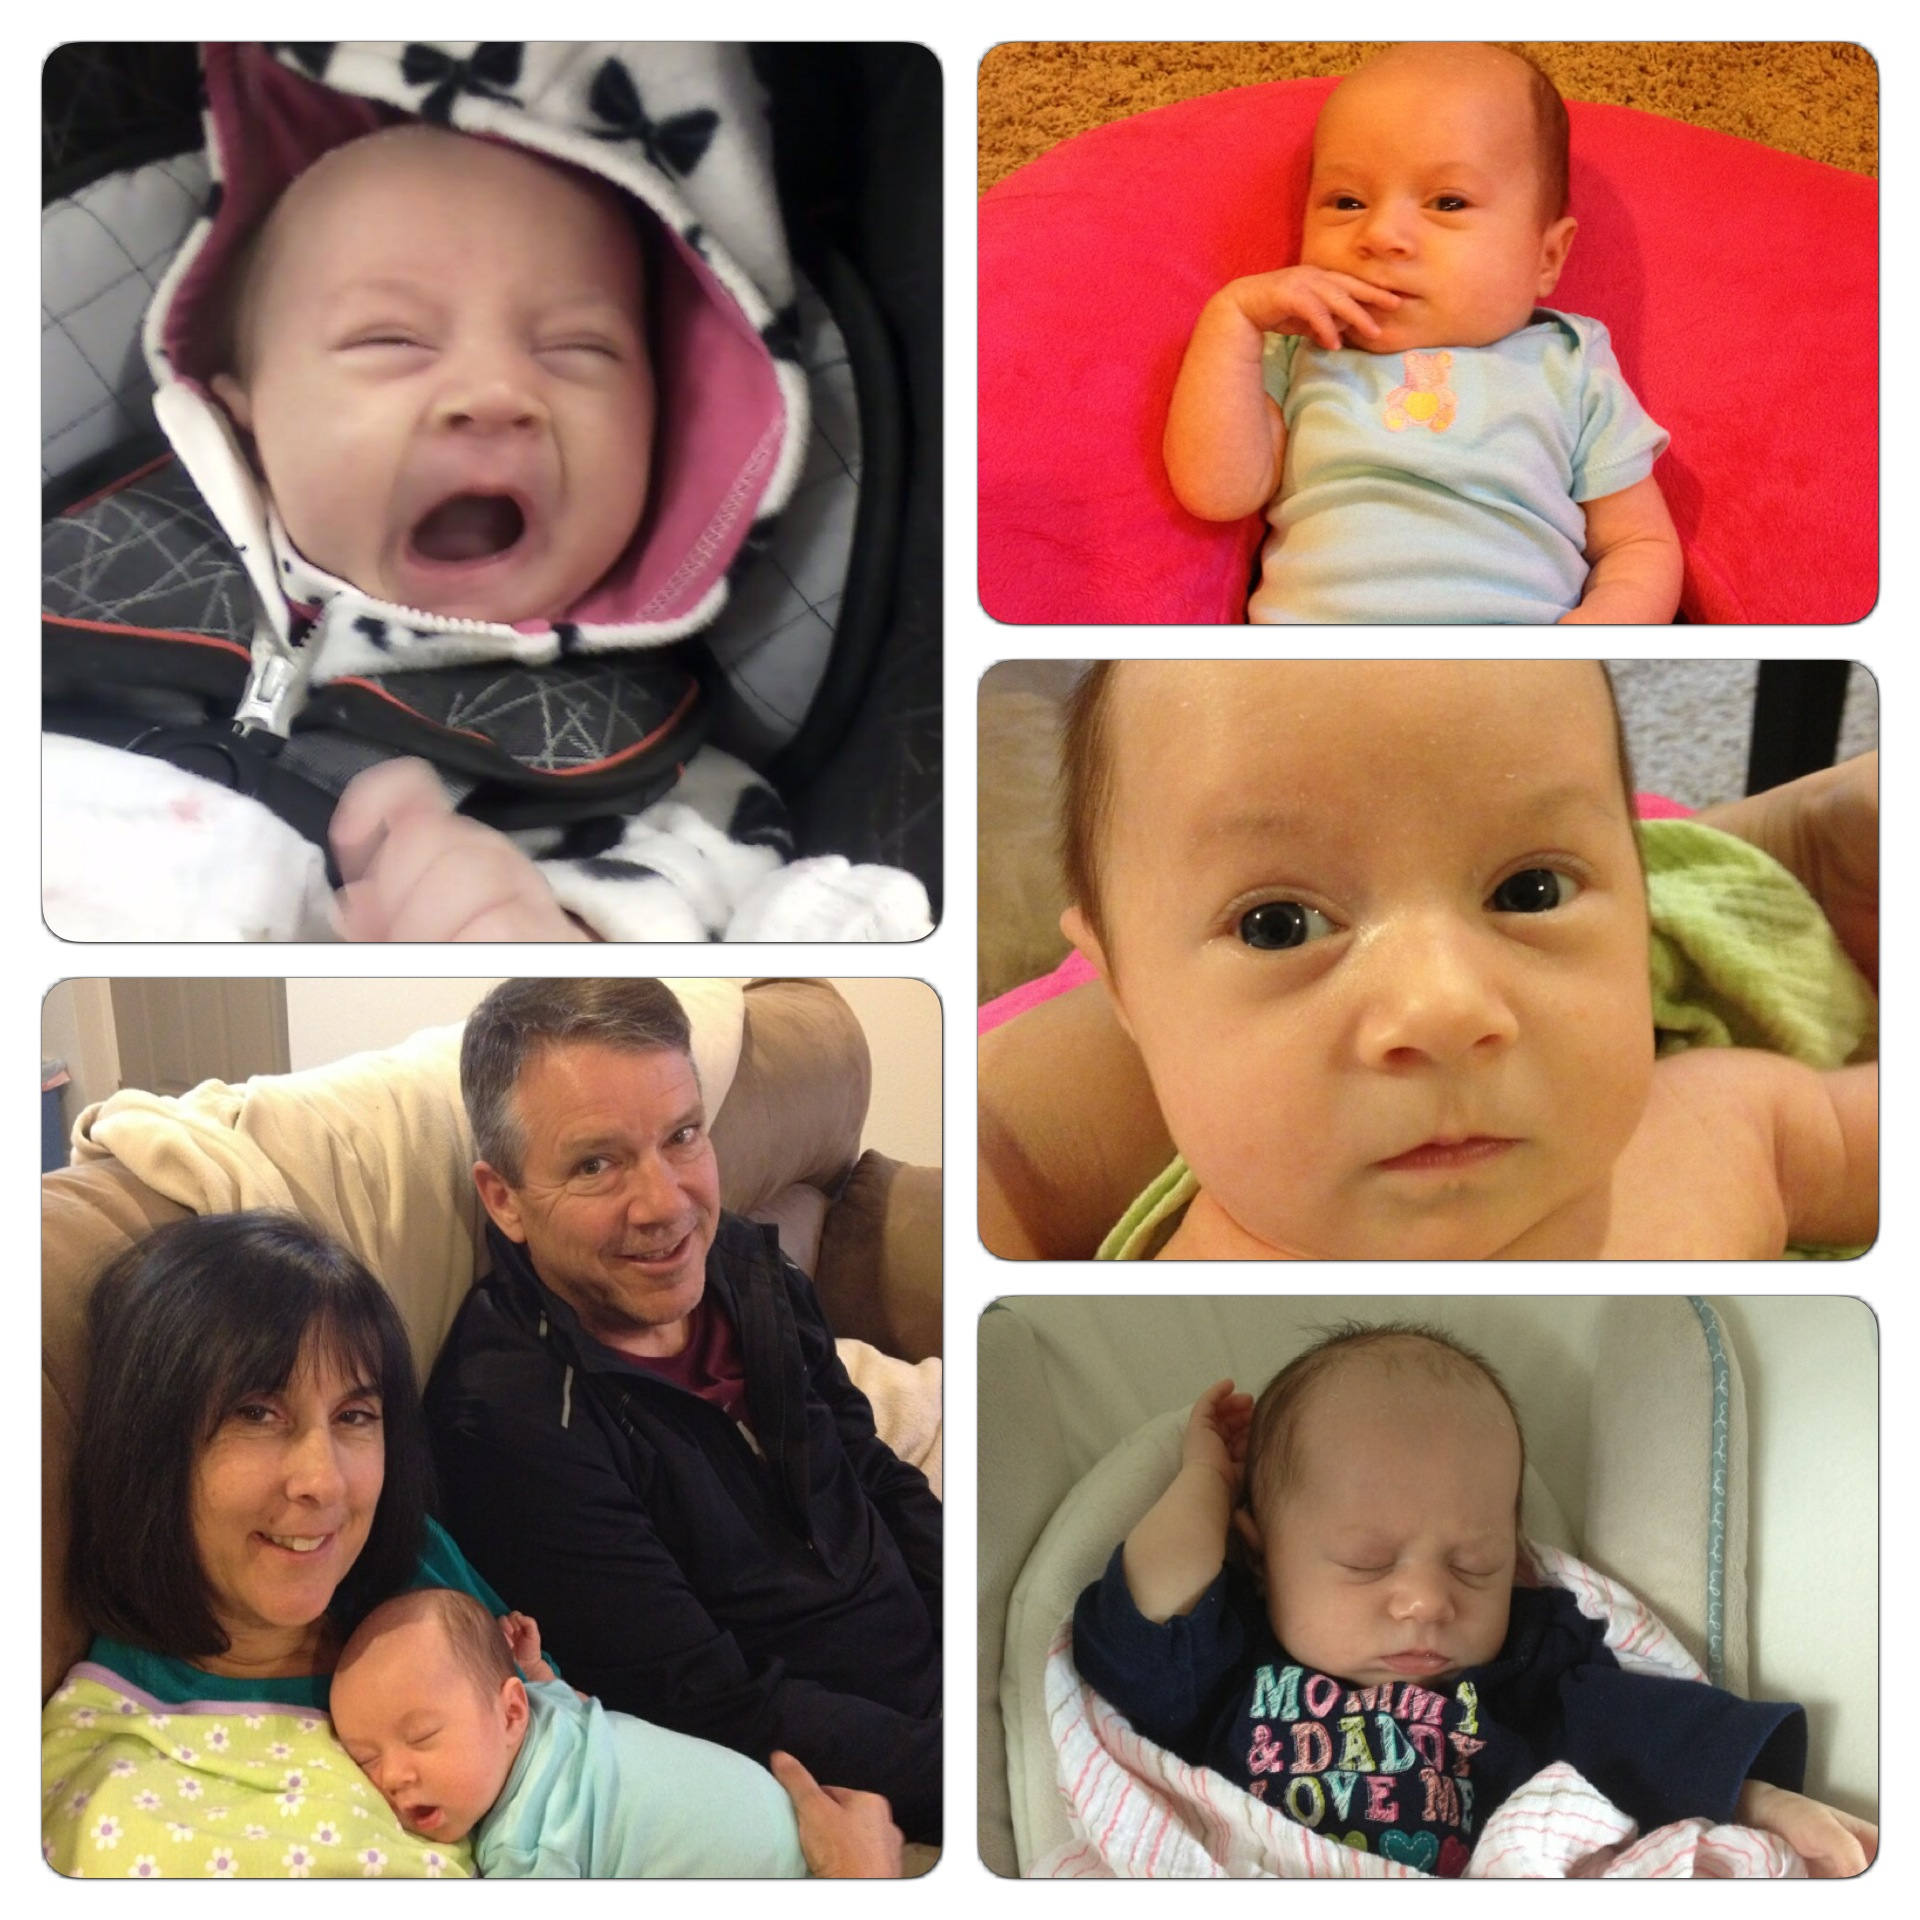 My niece, Mikayla, at six weeks old (my parents with her on the bottom left photo).